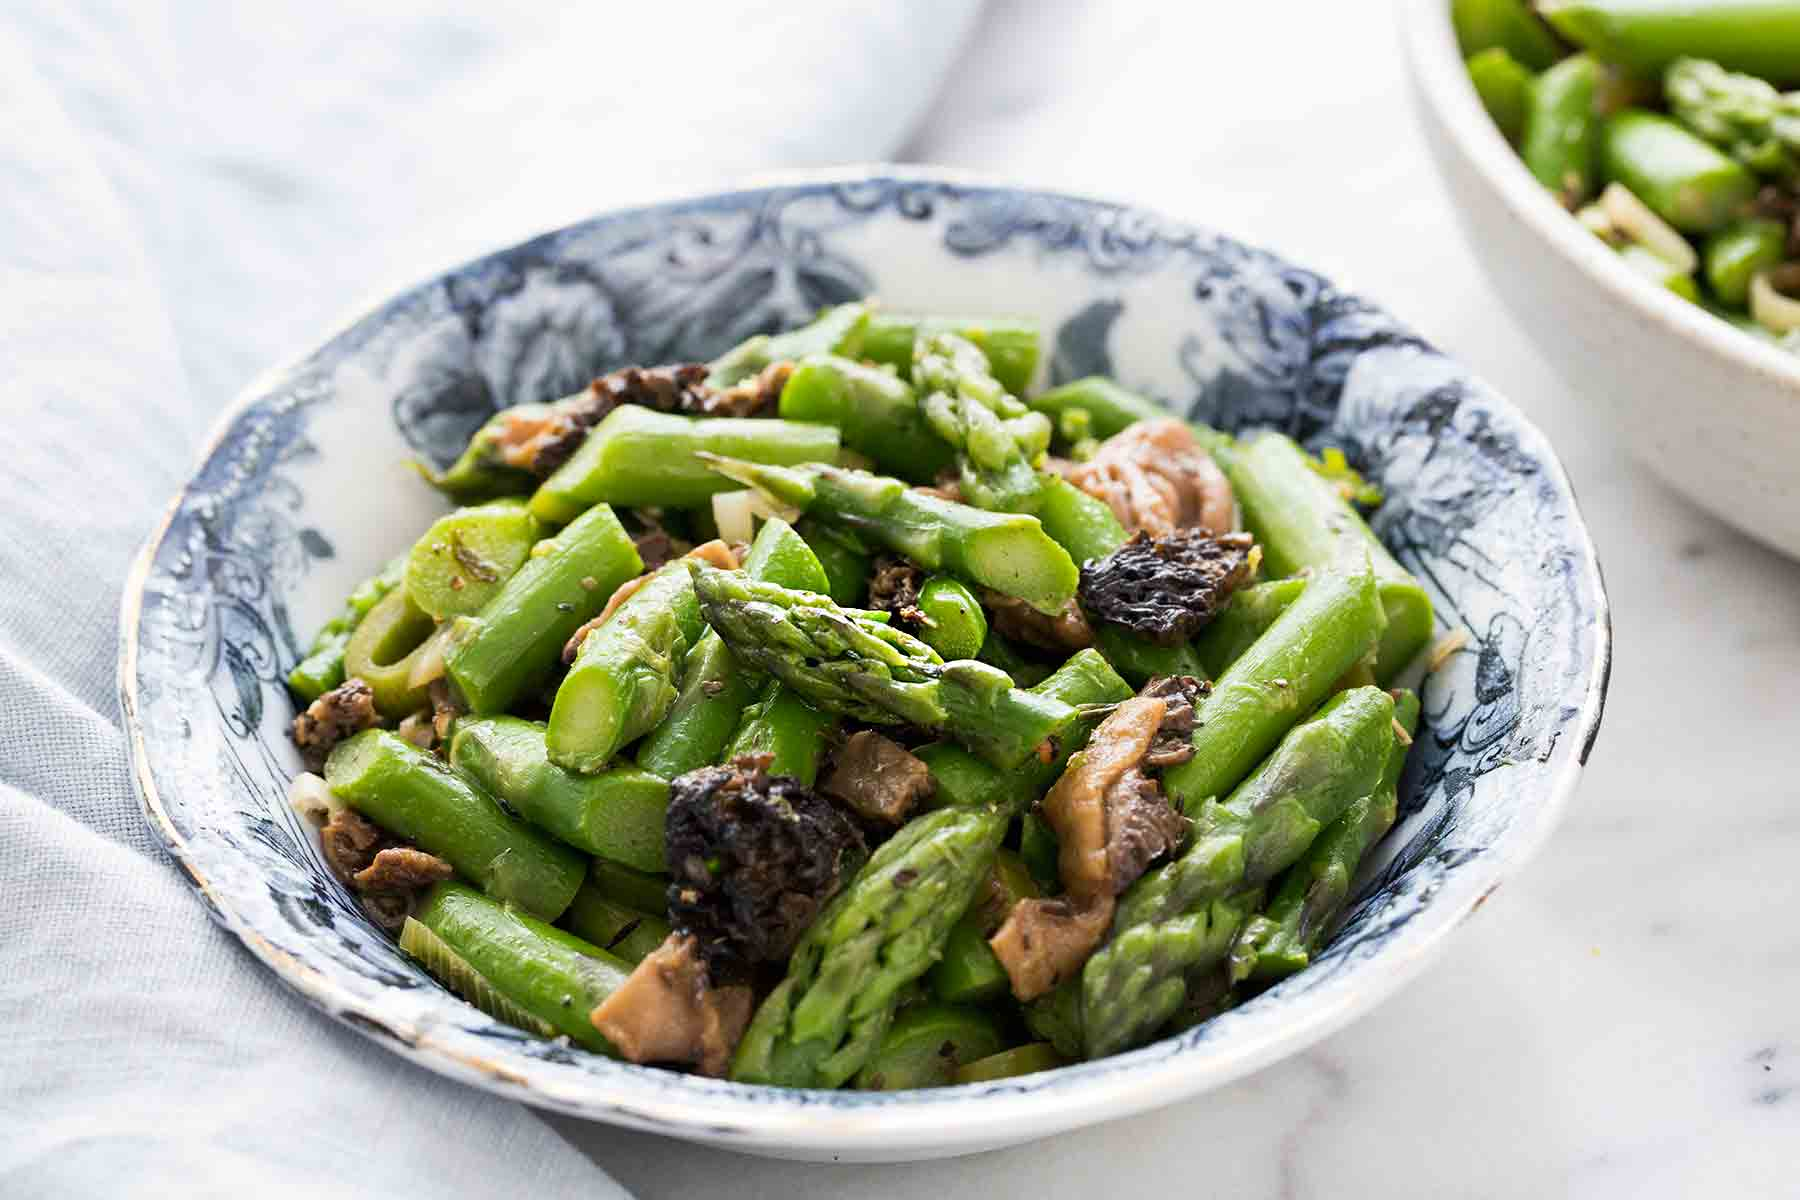 Sautéed Asparagus with Morels Recipe